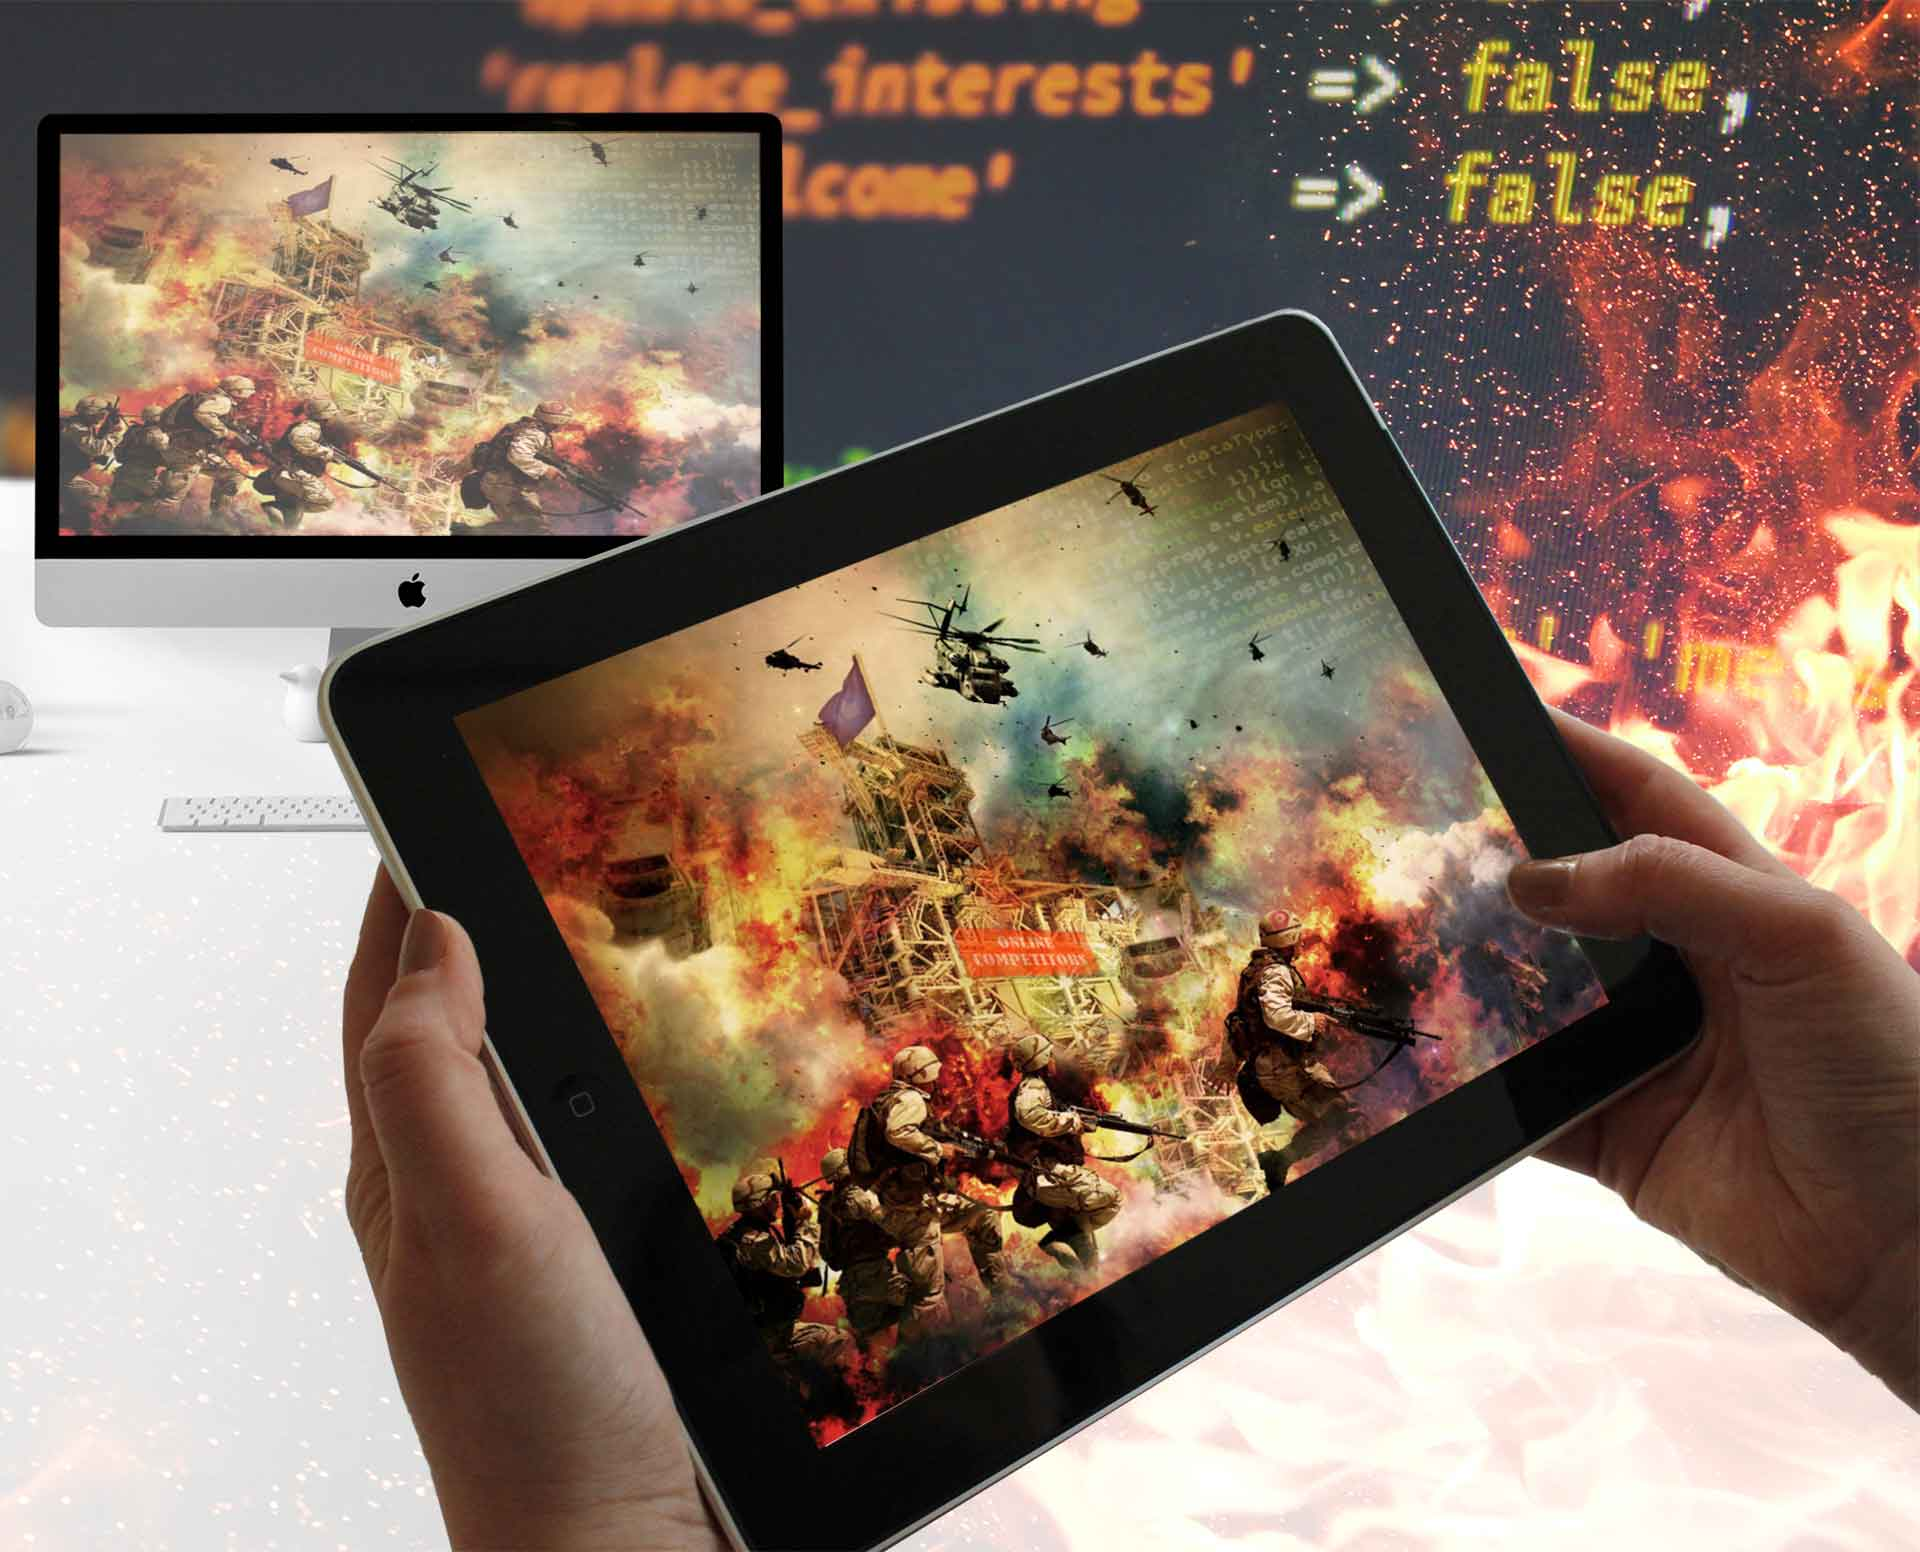 A full-fledged military attack across multiple device screen formats represents the online battle against competitors